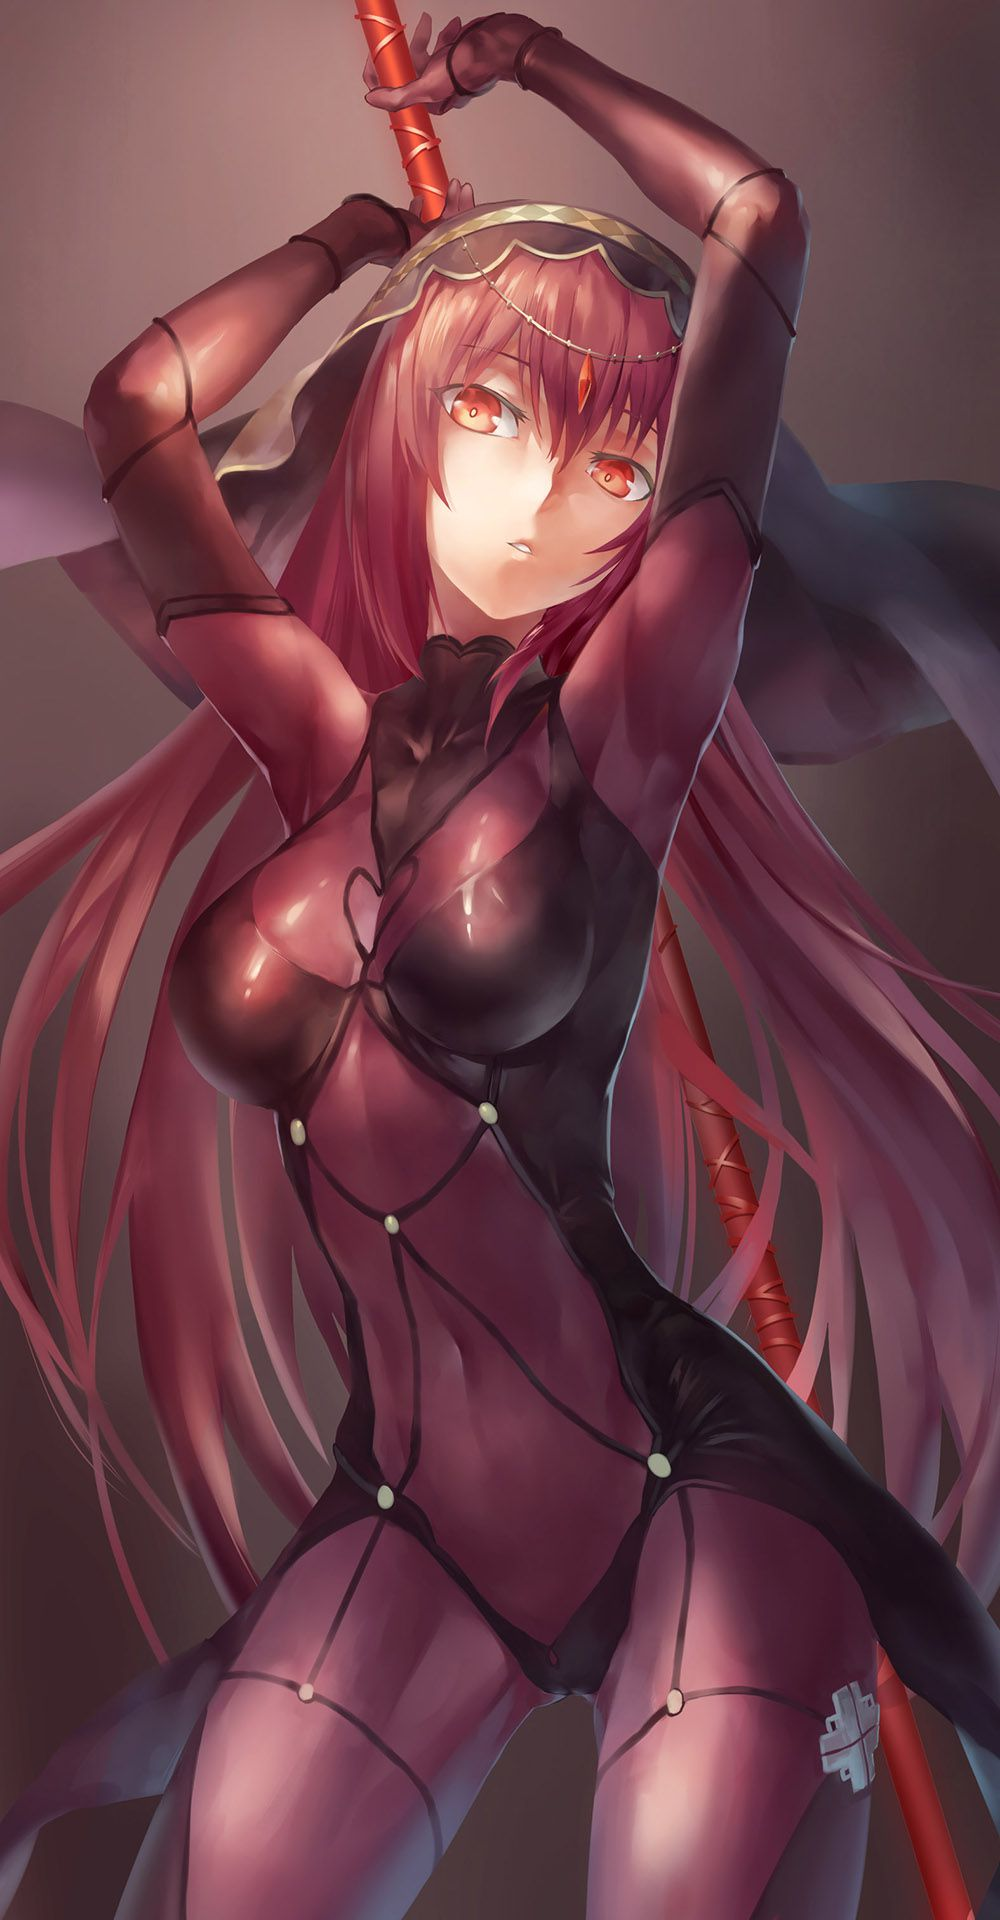 scathach_(fategrand_order)039